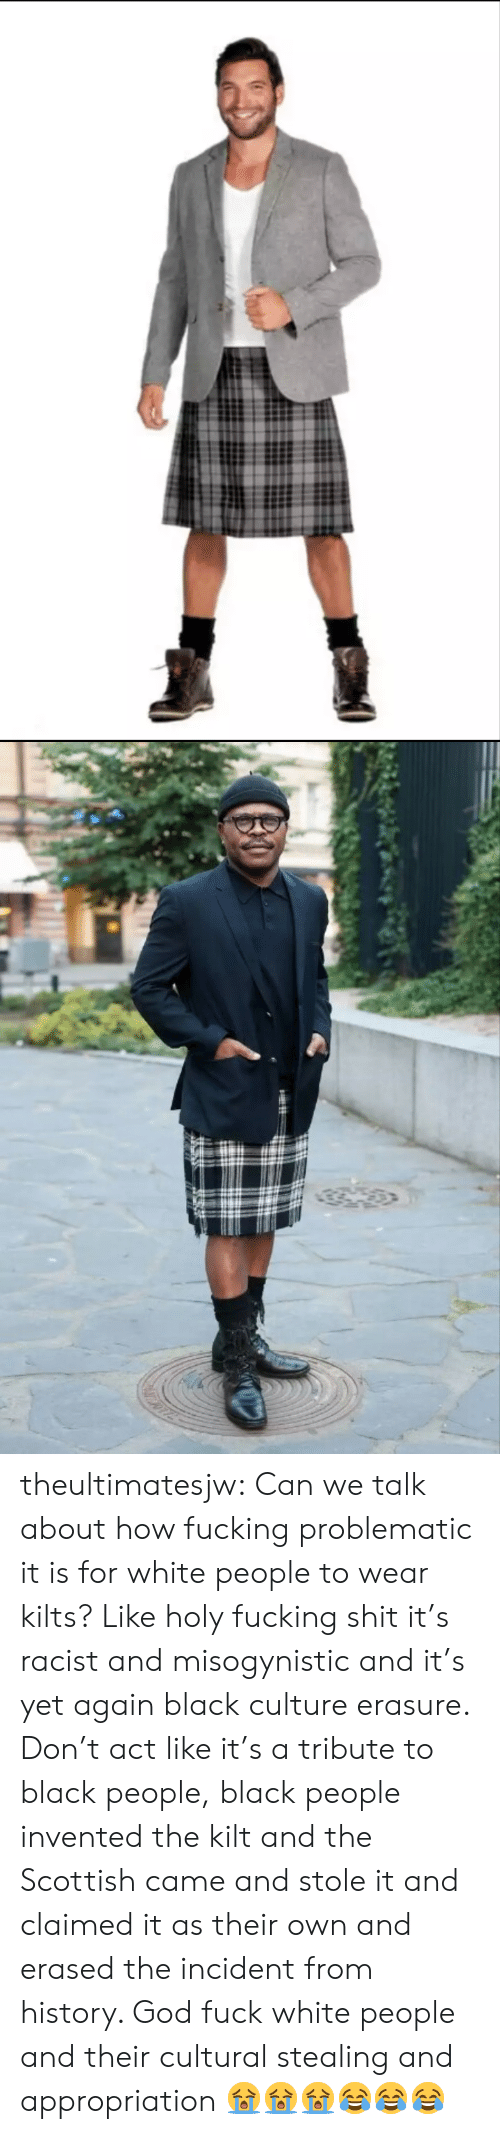 kilt: theultimatesjw:  Can we talk about how fucking problematic it is for white people to wear kilts? Like holy fucking shit it's racist and misogynistic and it's yet again black culture erasure. Don't act like it's a tribute to black people, black people invented the kilt and the Scottish came and stole it and claimed it as their own and erased the incident from history. God fuck white people and their cultural stealing and appropriation  😭😭😭😂😂😂